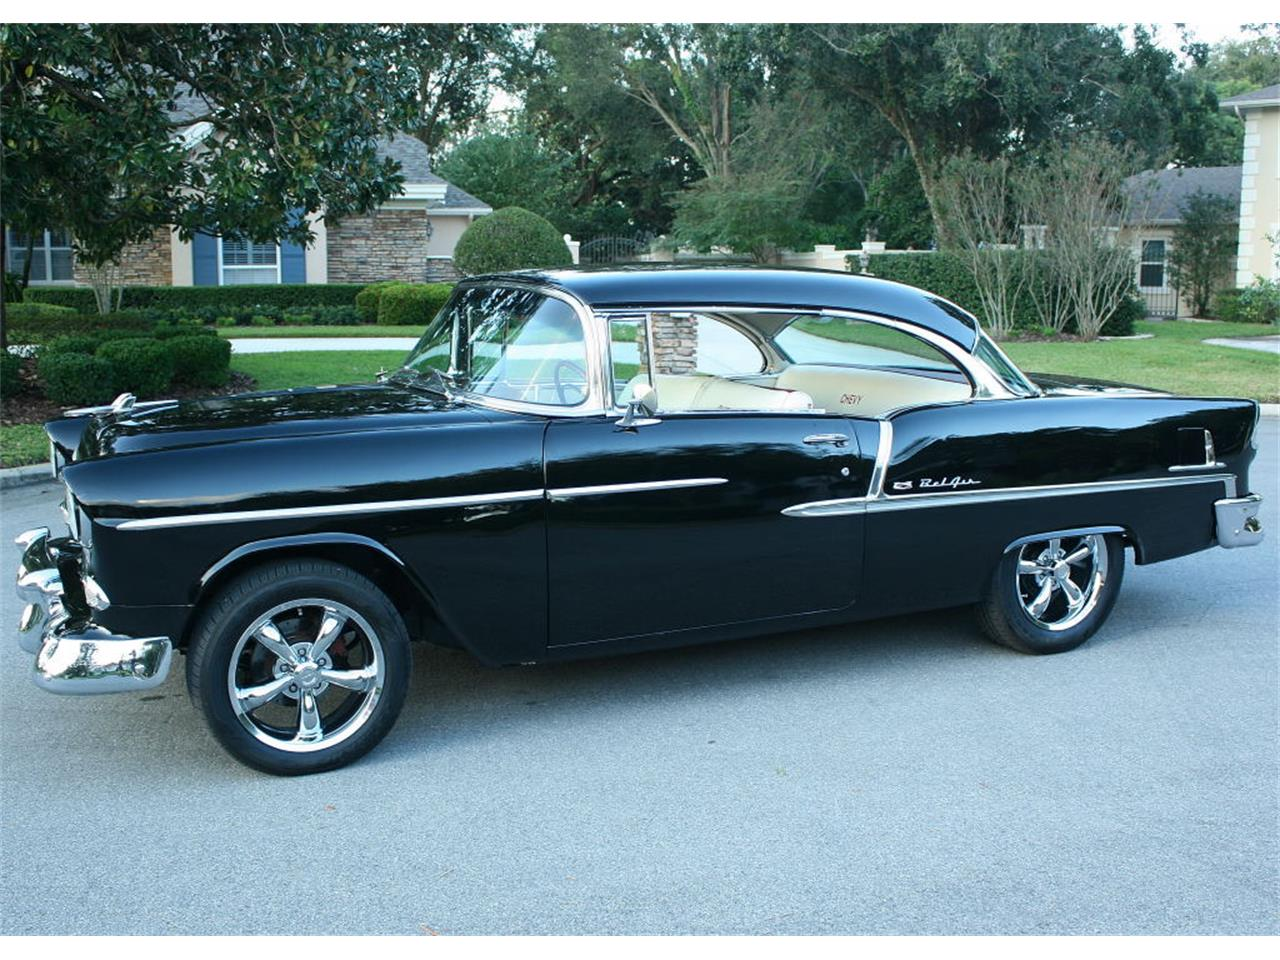 Large Picture of '55 Chevrolet Bel Air located in Lakeland Florida - $59,500.00 - MCLQ